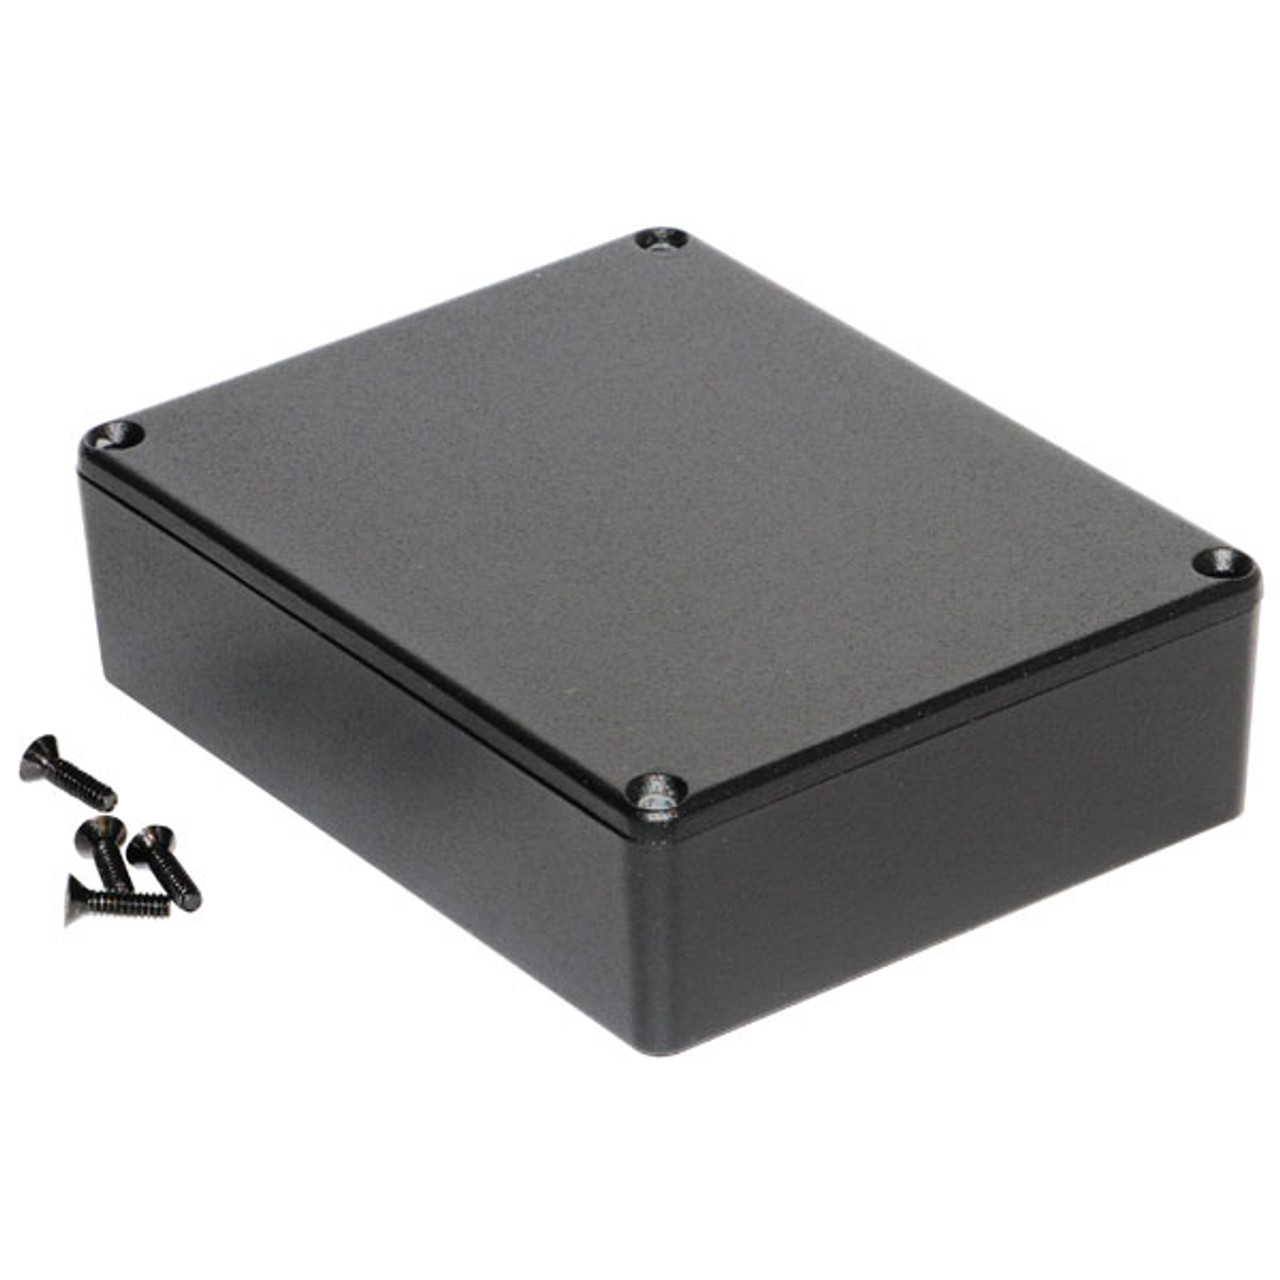 Hammond 1590BBBK - Medium Black Pedal Enclosure